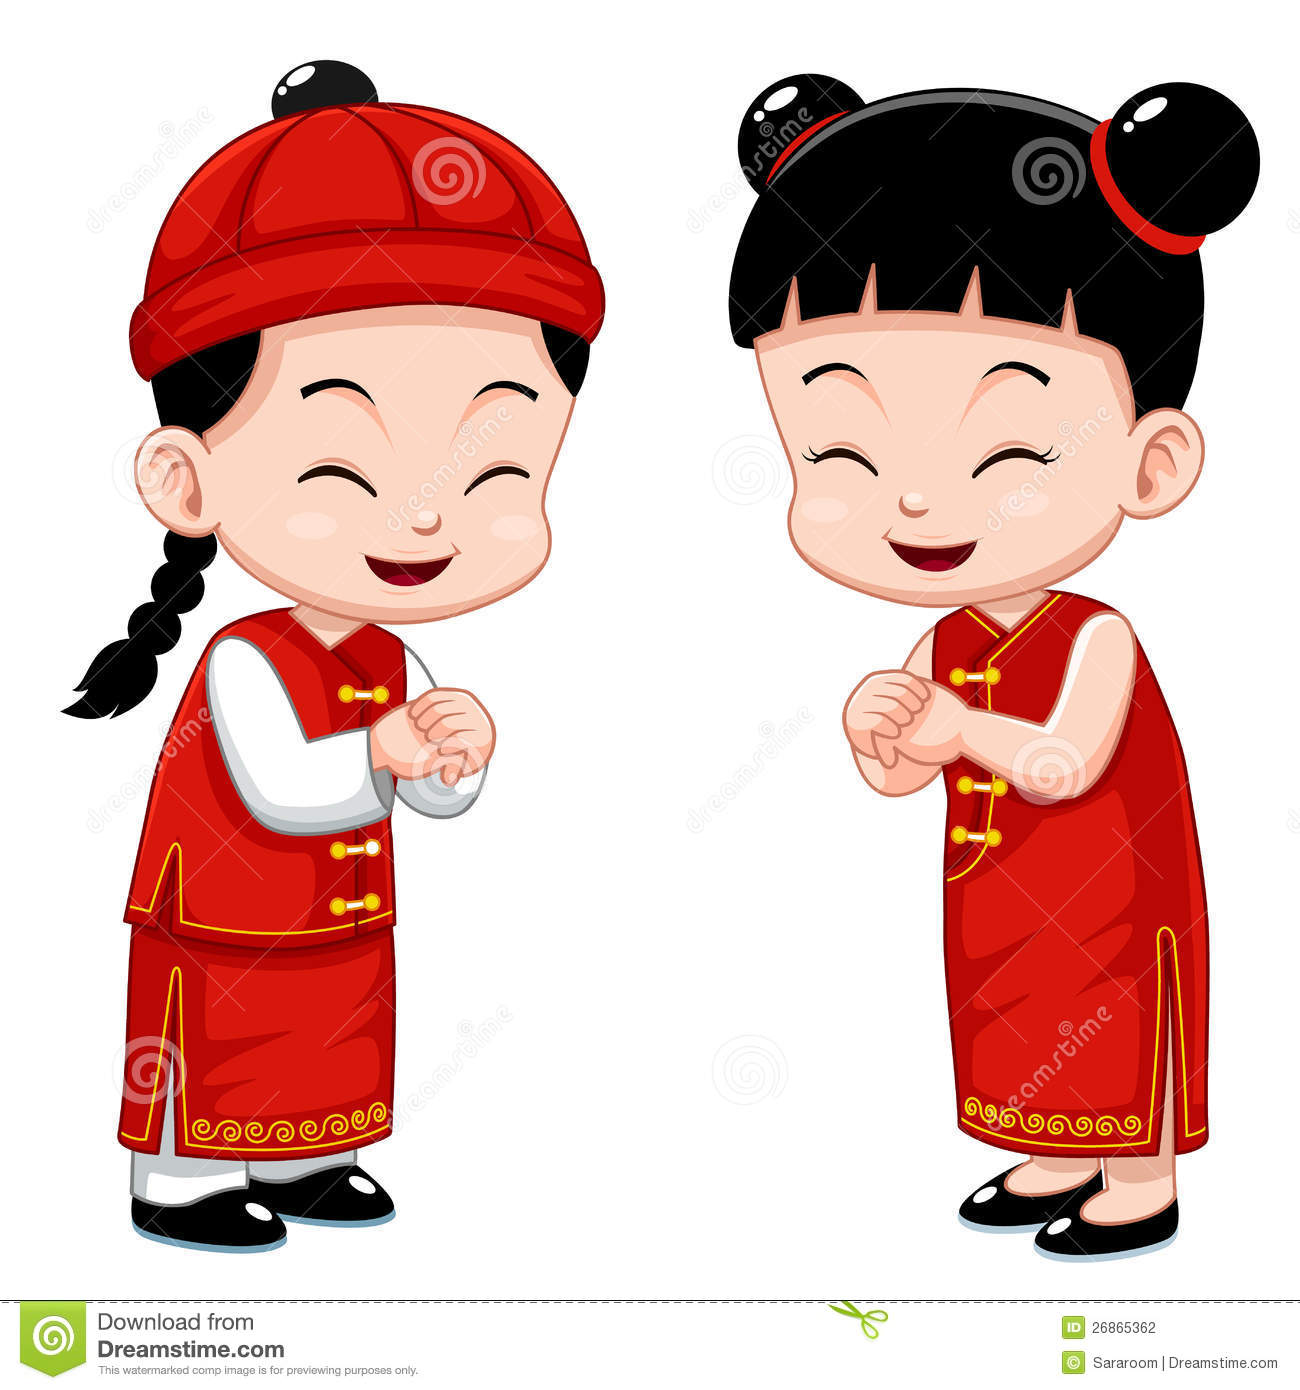 Chinese kids clipart.